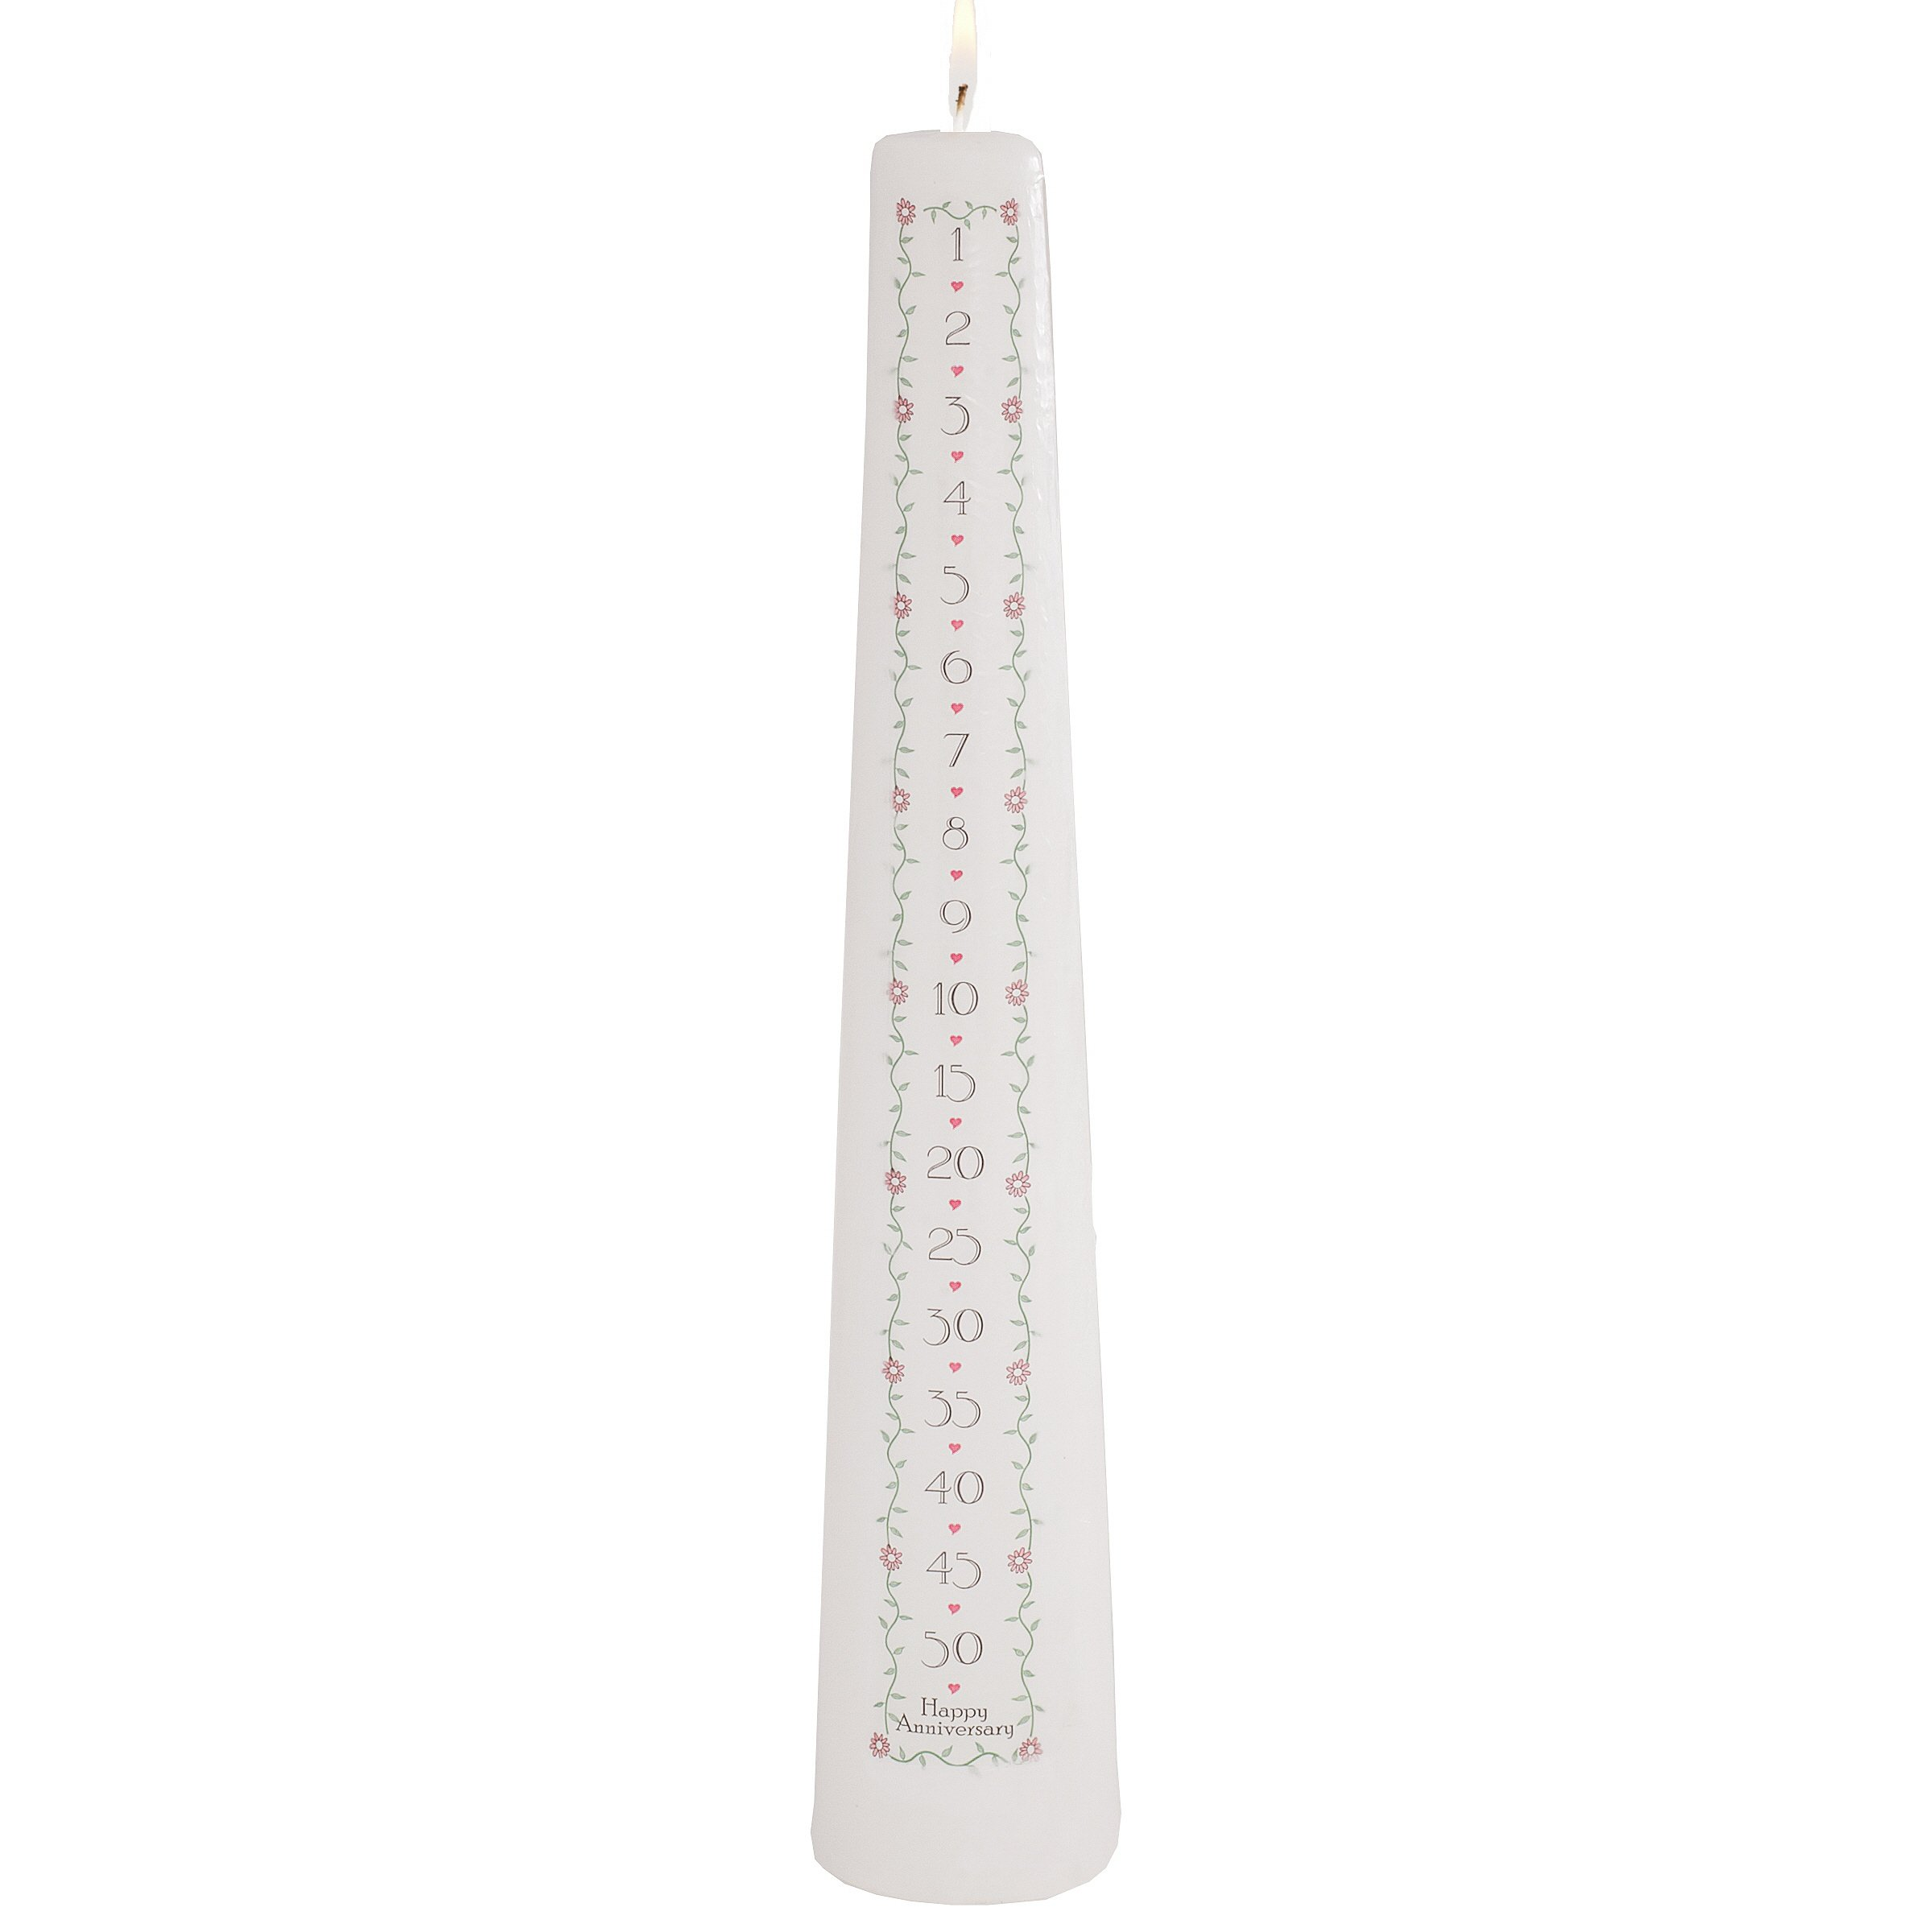 Celebration Candles Wedding Unity 15-Inch 1 to 50 Year Numbered Countdown Anniversary Candle, White by Celebration Candles